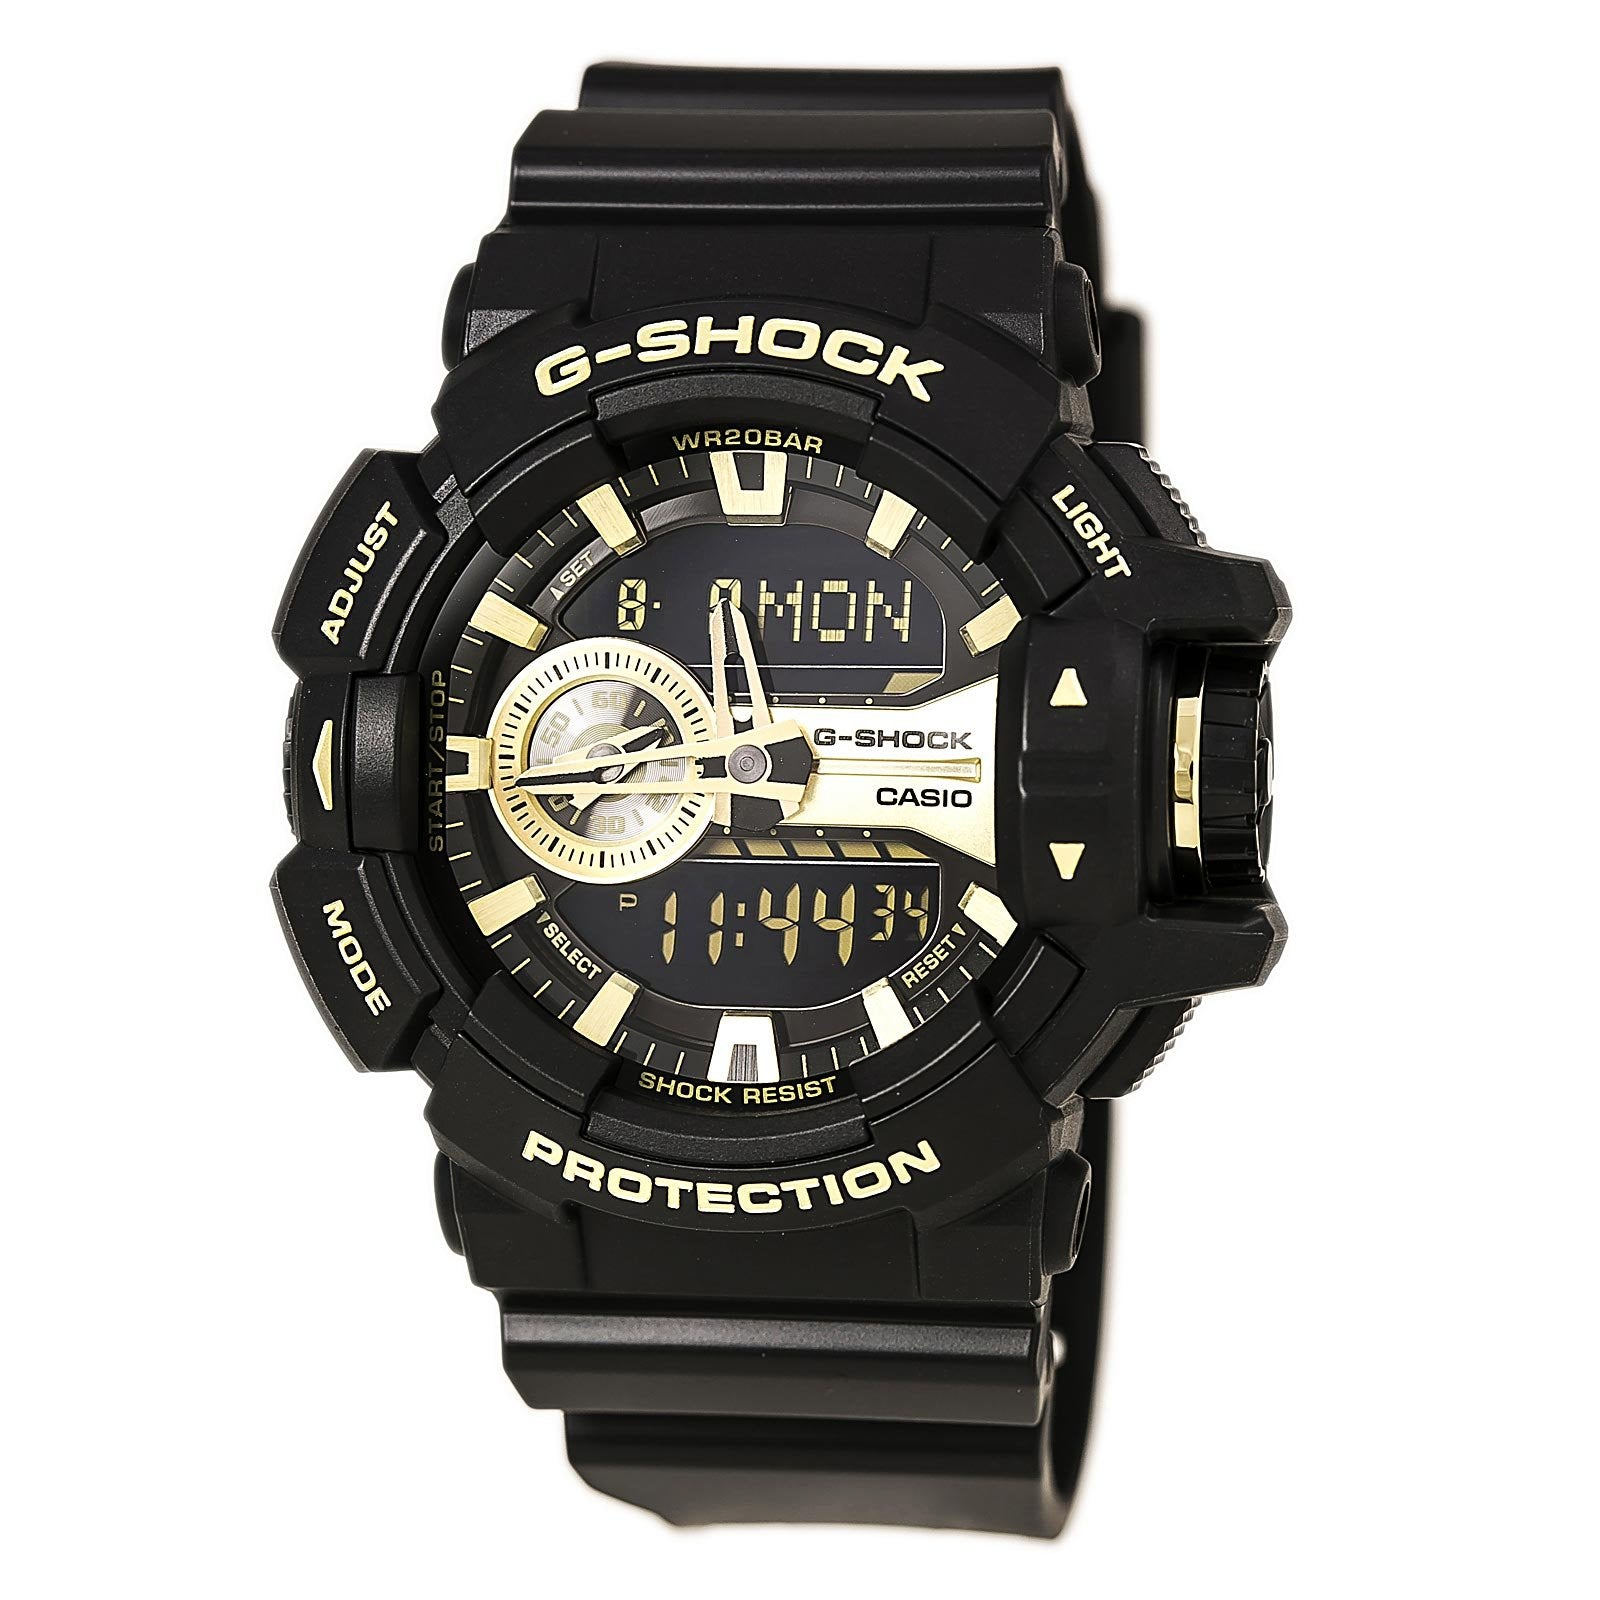 Casio G-Shock Mens Watch GA400GB-1A9CR - yrGear Australia